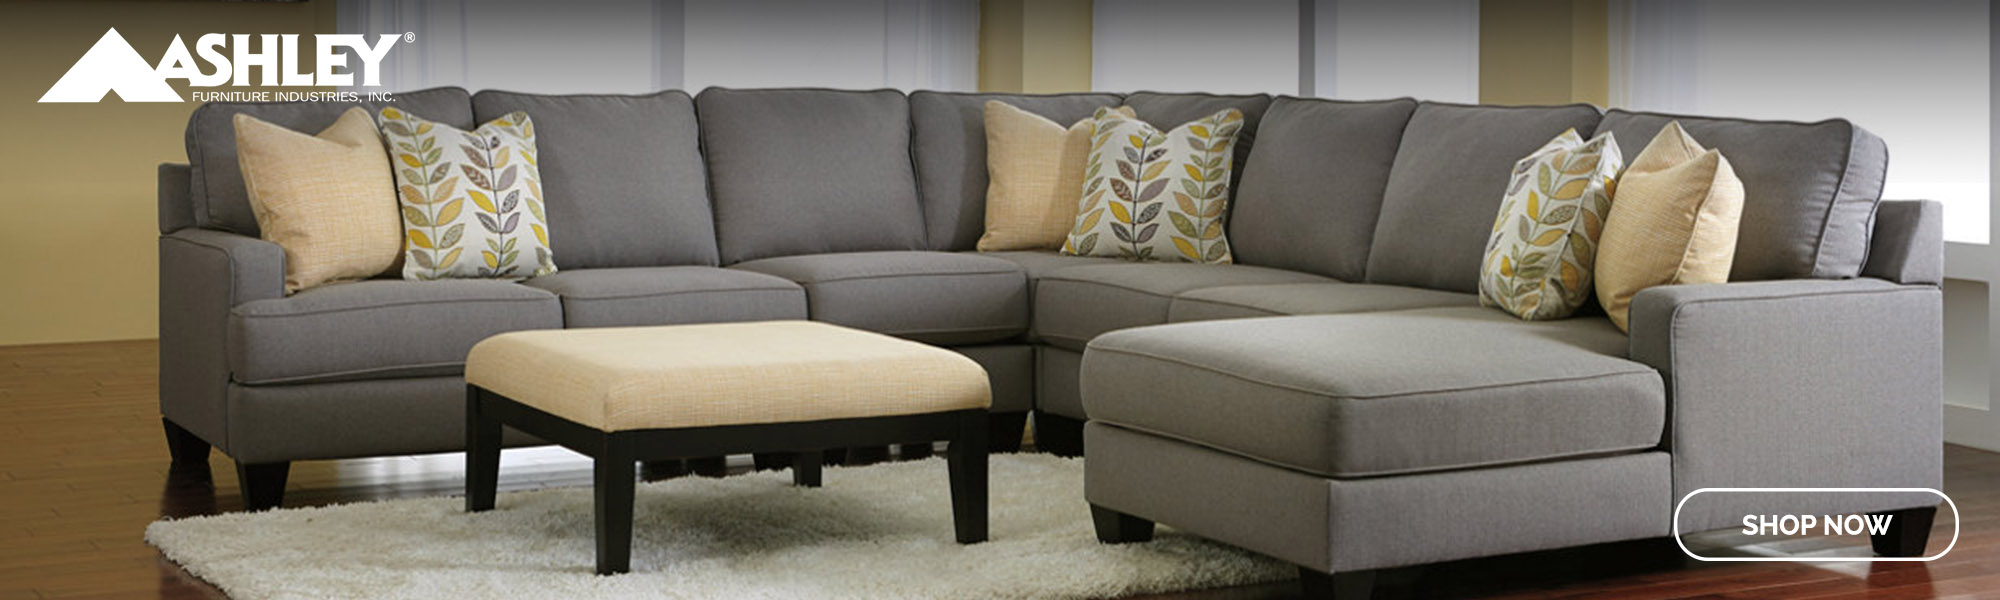 Ashley Furniture banner